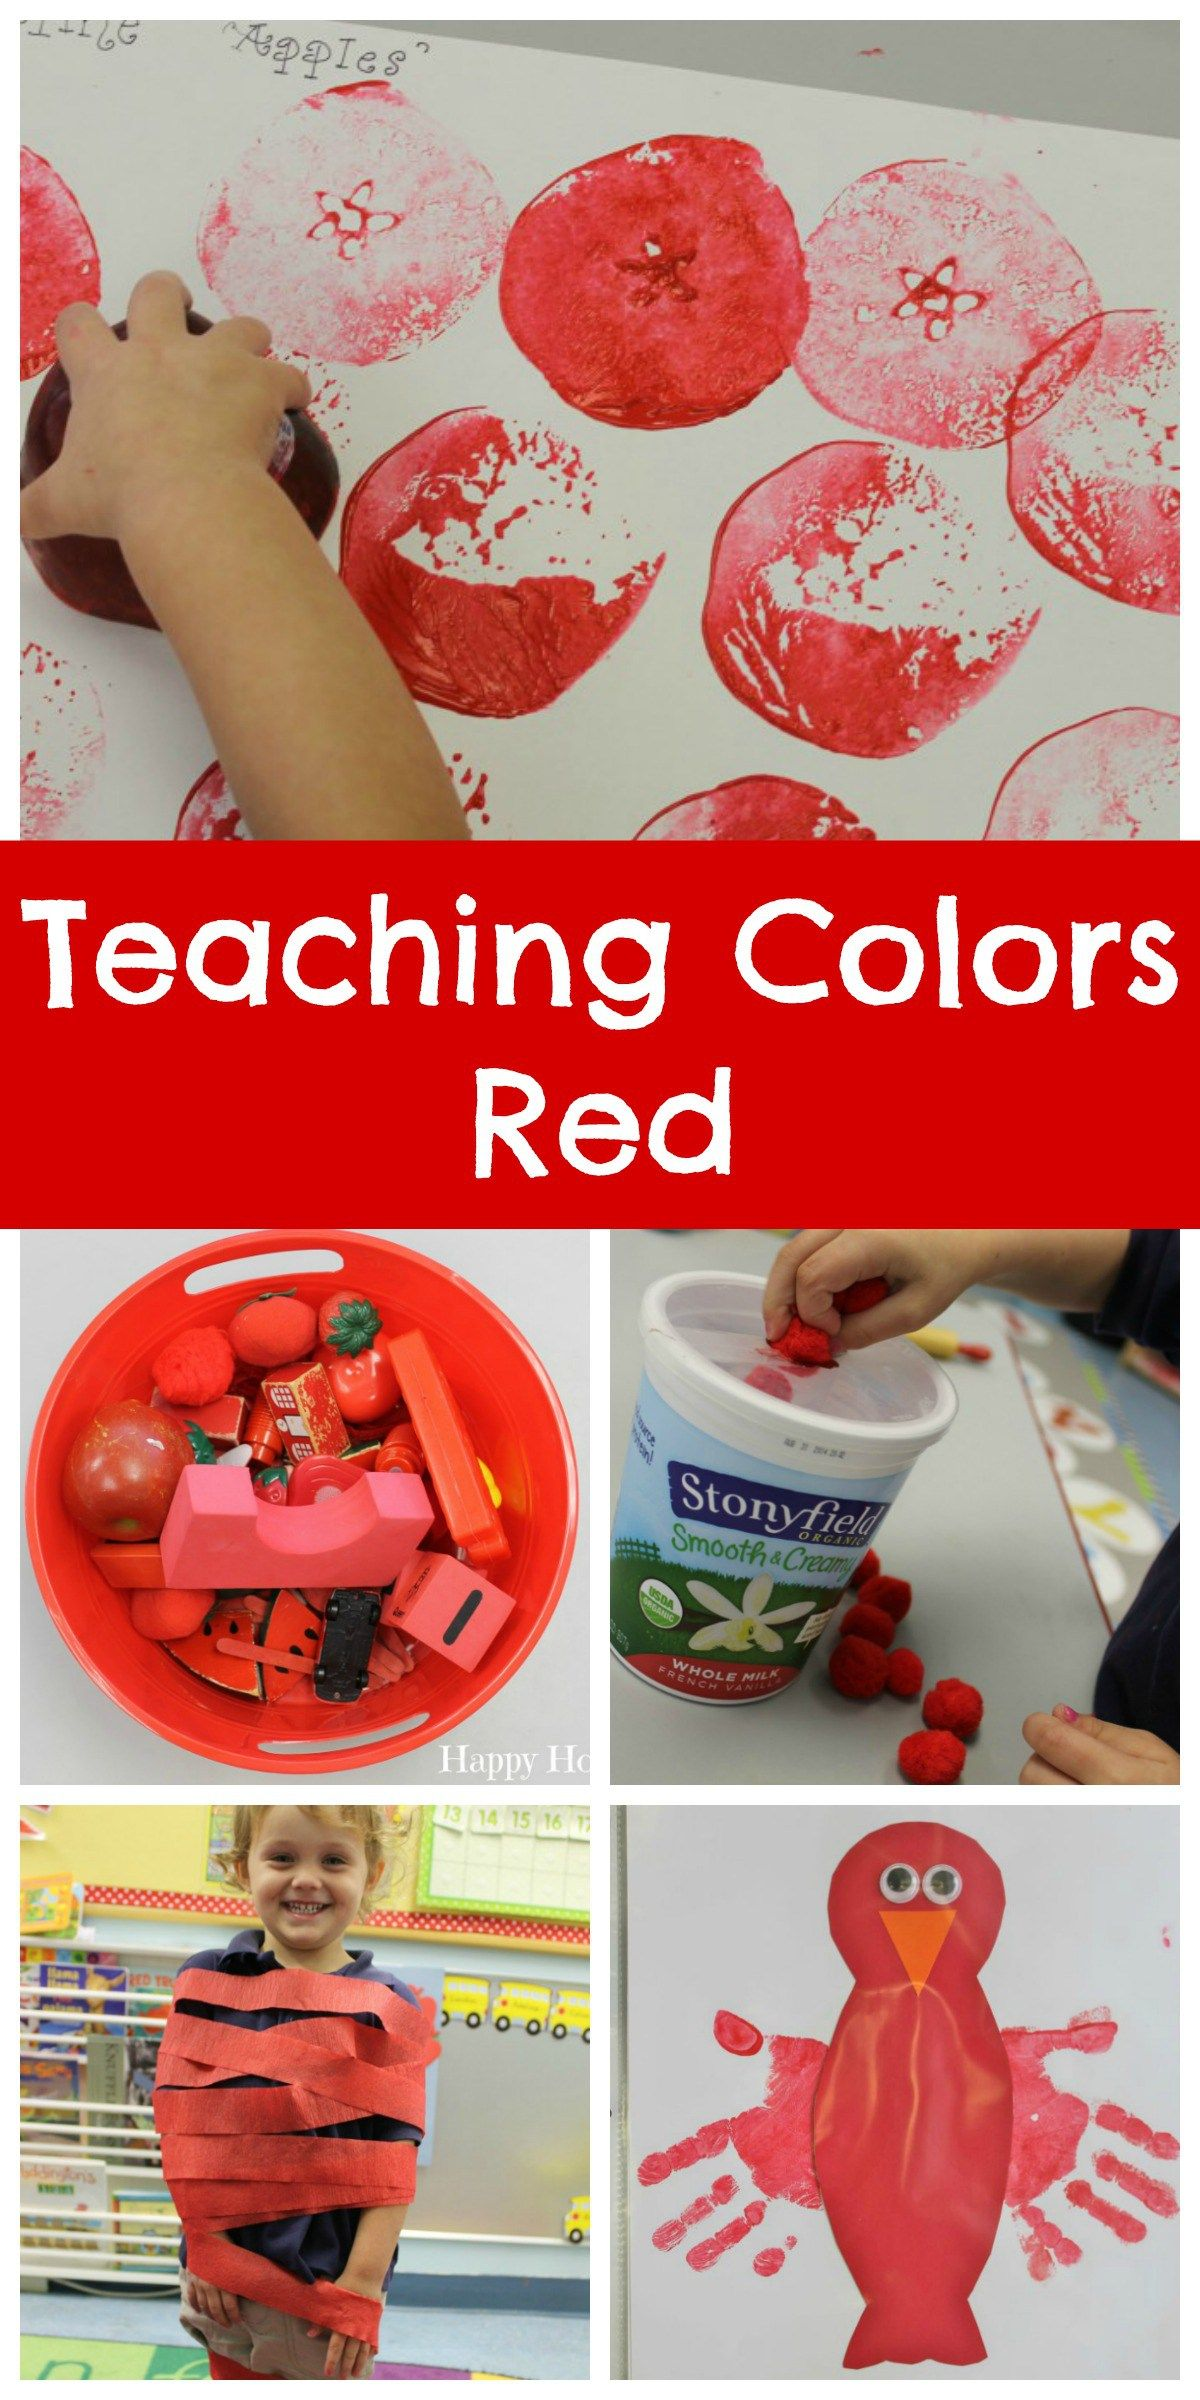 Teaching Colors - Red | Teaching Preschool | Teaching colors